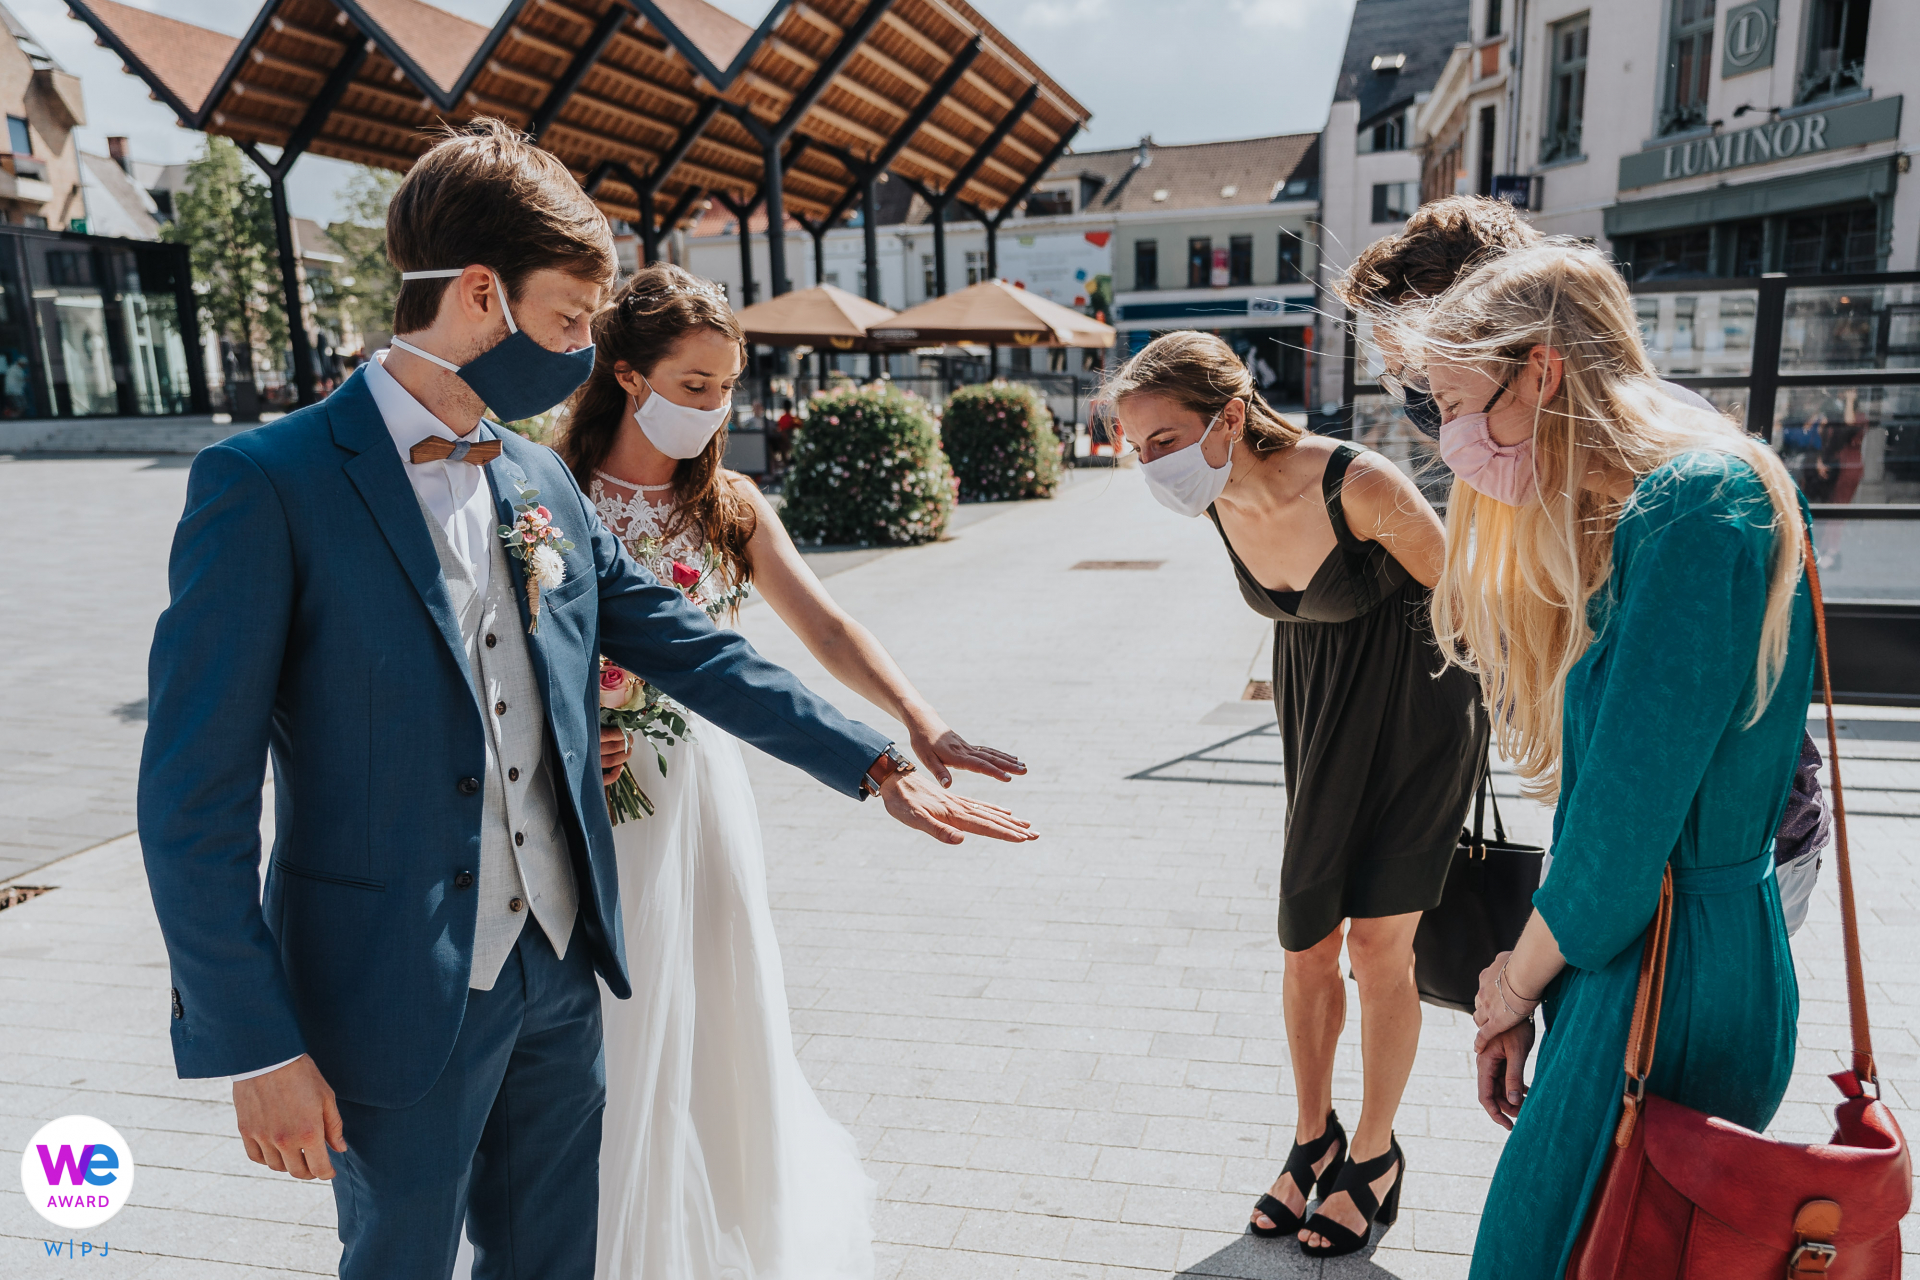 City Hall Vilvoorde, Belgium - COVID Elopement Image | The bride and groom show their rings